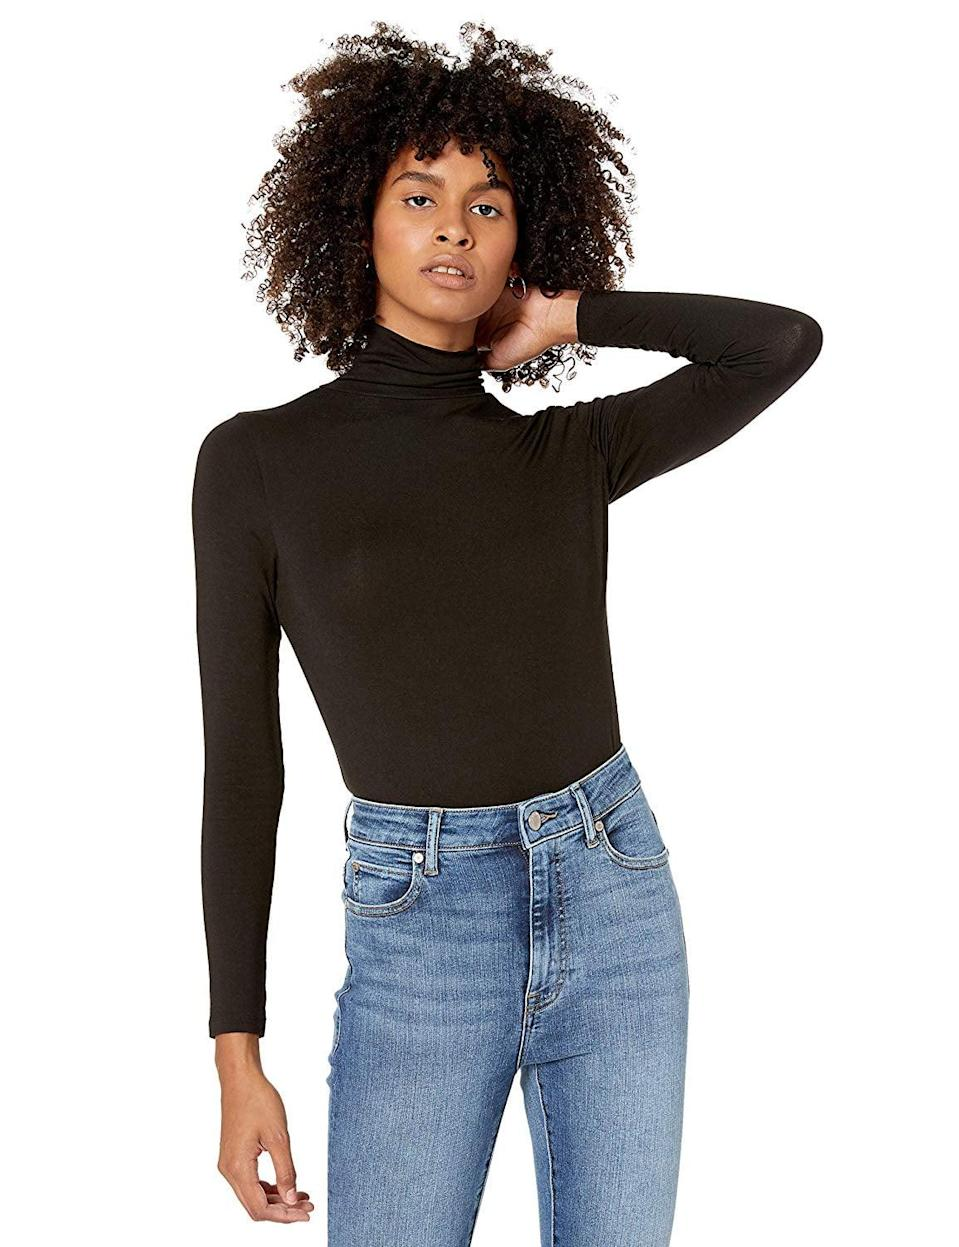 """<p>Everyone should have a basic like this <a href=""""https://www.popsugar.com/buy/Drop-Phoebe-Long-Sleeved-Turtleneck-484652?p_name=The%20Drop%20Phoebe%20Long-Sleeved%20Turtleneck&retailer=amazon.com&pid=484652&price=20&evar1=fab%3Auk&evar9=46310389&evar98=https%3A%2F%2Fwww.popsugar.com%2Ffashion%2Fphoto-gallery%2F46310389%2Fimage%2F46812040%2FDrop-Phoebe-Long-Sleeved-Turtleneck&list1=shopping%2Cfall%20fashion%2Camazon%2Csummer%20fashion%2C50%20under%20%2450%2Caffordable%20shopping&prop13=api&pdata=1"""" rel=""""nofollow noopener"""" class=""""link rapid-noclick-resp"""" target=""""_blank"""" data-ylk=""""slk:The Drop Phoebe Long-Sleeved Turtleneck"""">The Drop Phoebe Long-Sleeved Turtleneck </a> ($20).</p>"""